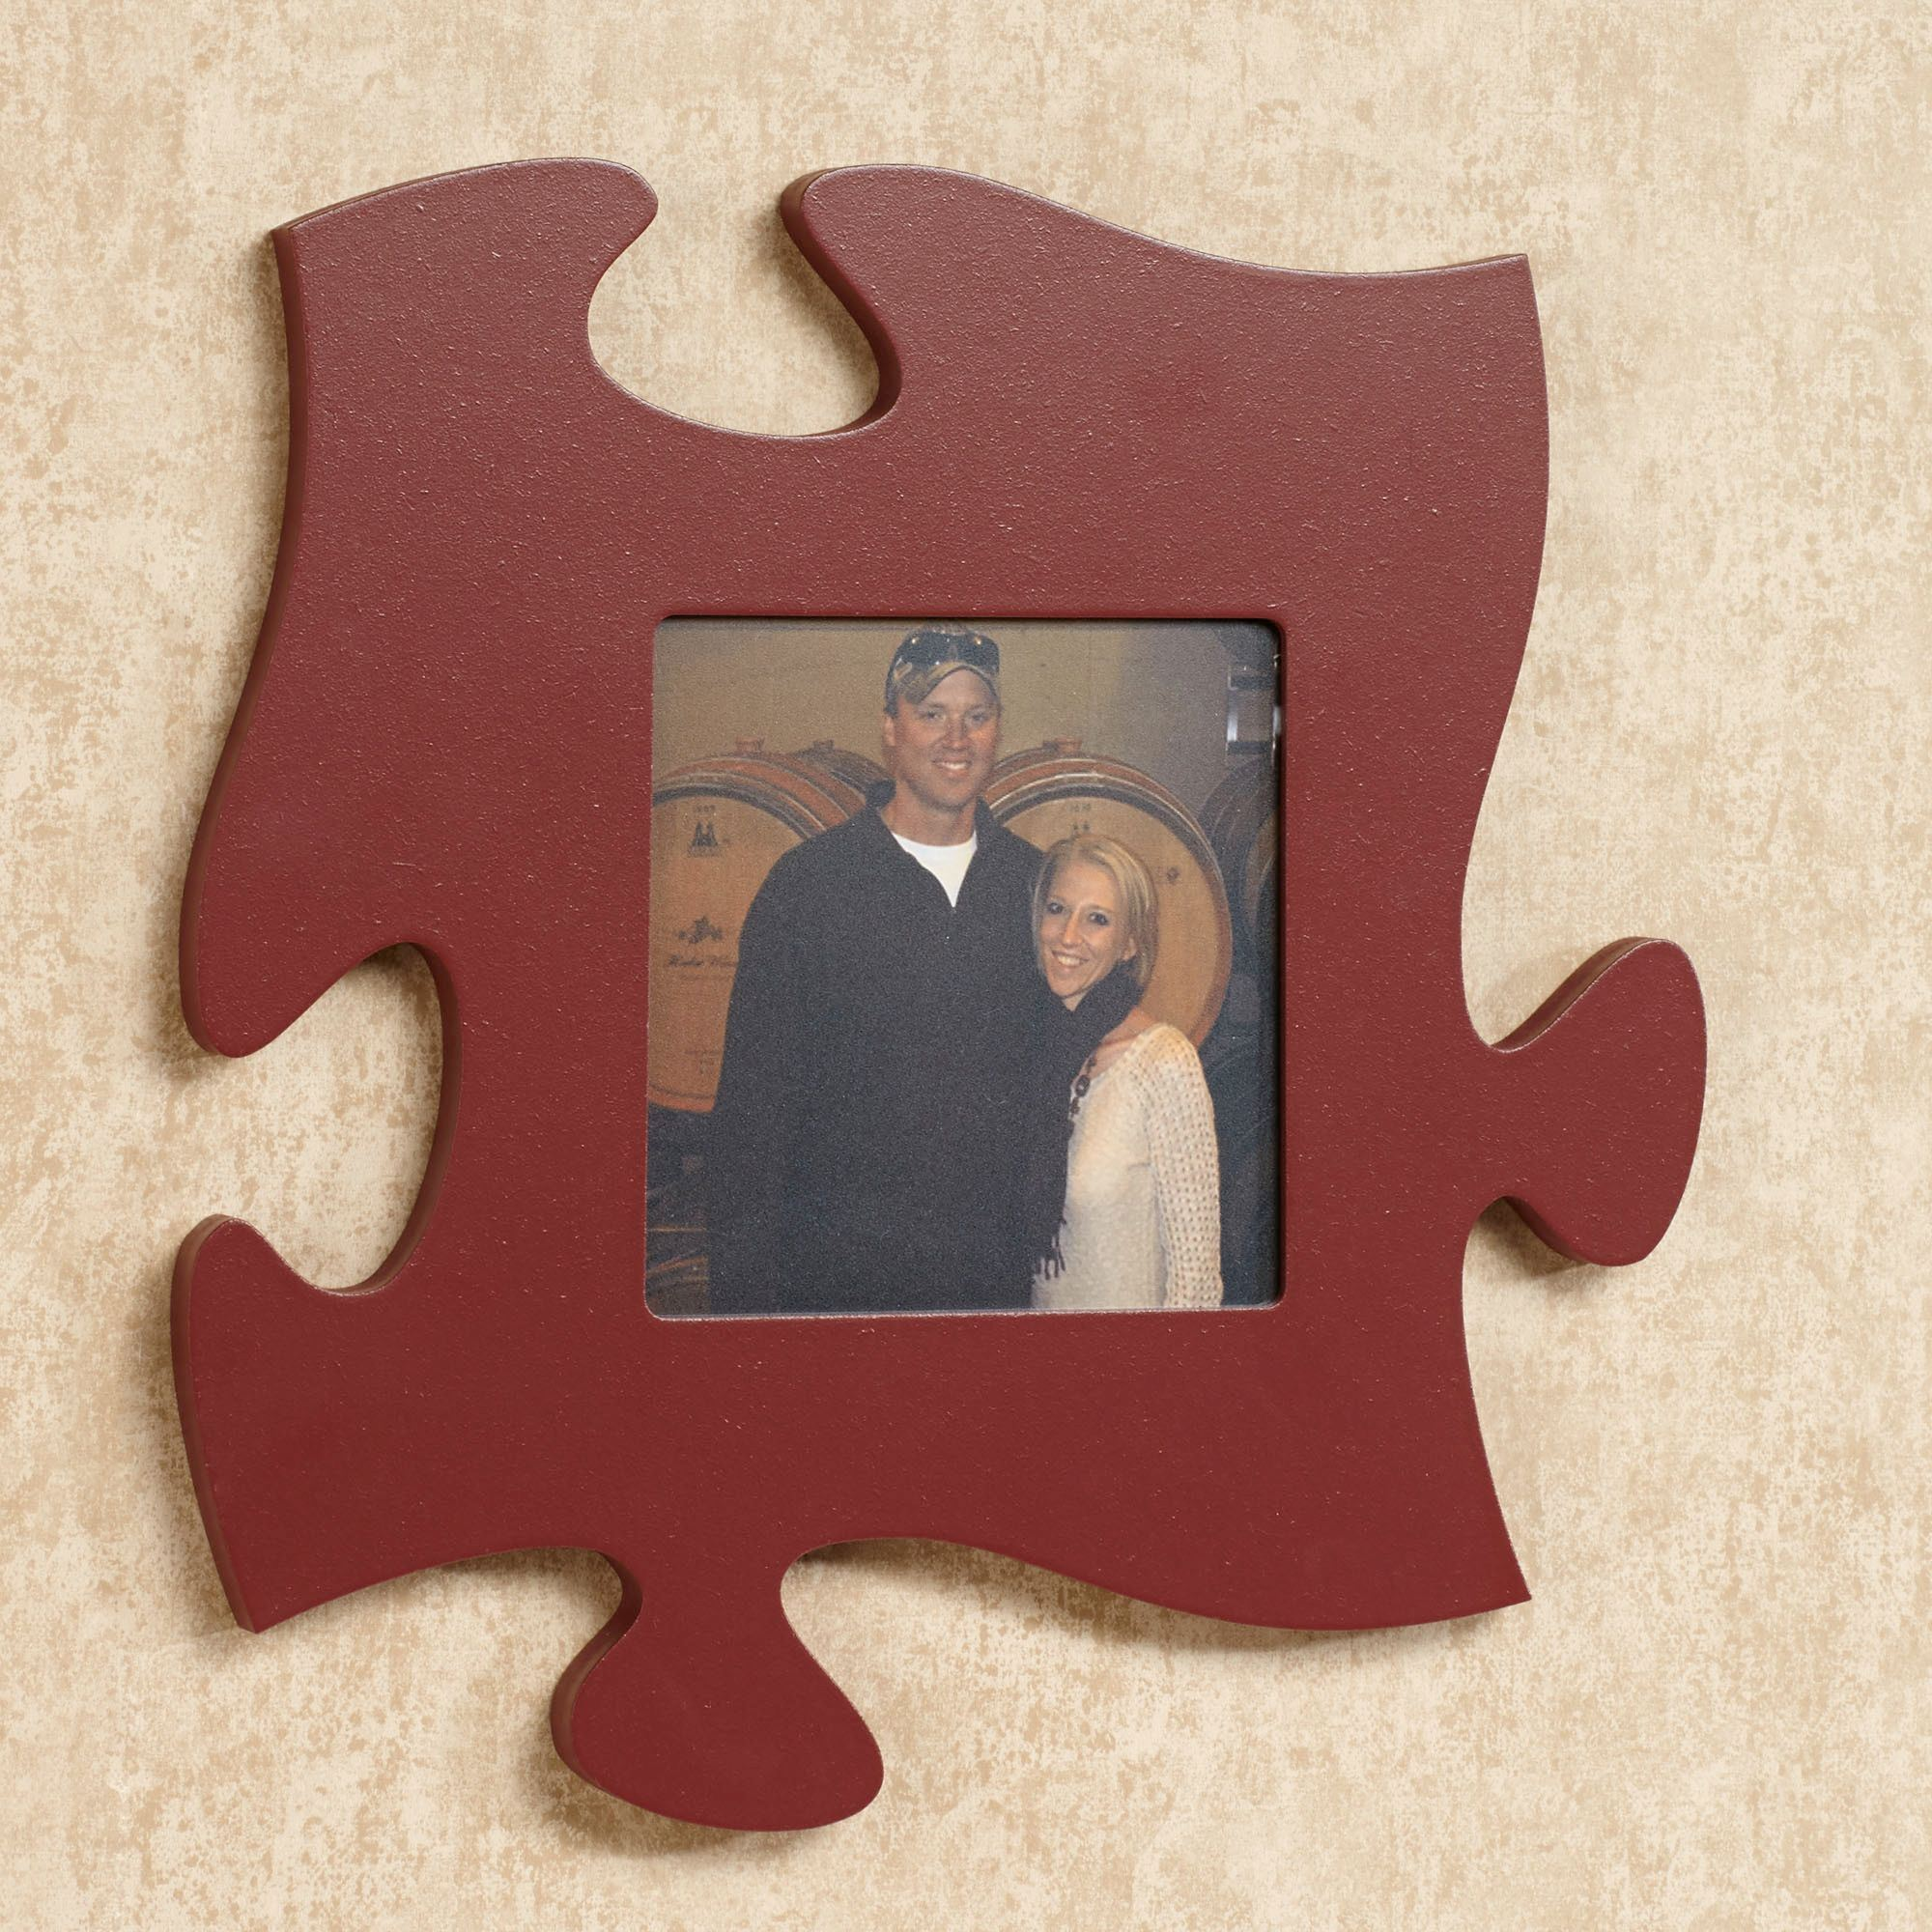 Every family photo frame puzzle piece wall art puzzle piece photo frame burgundy jeuxipadfo Images